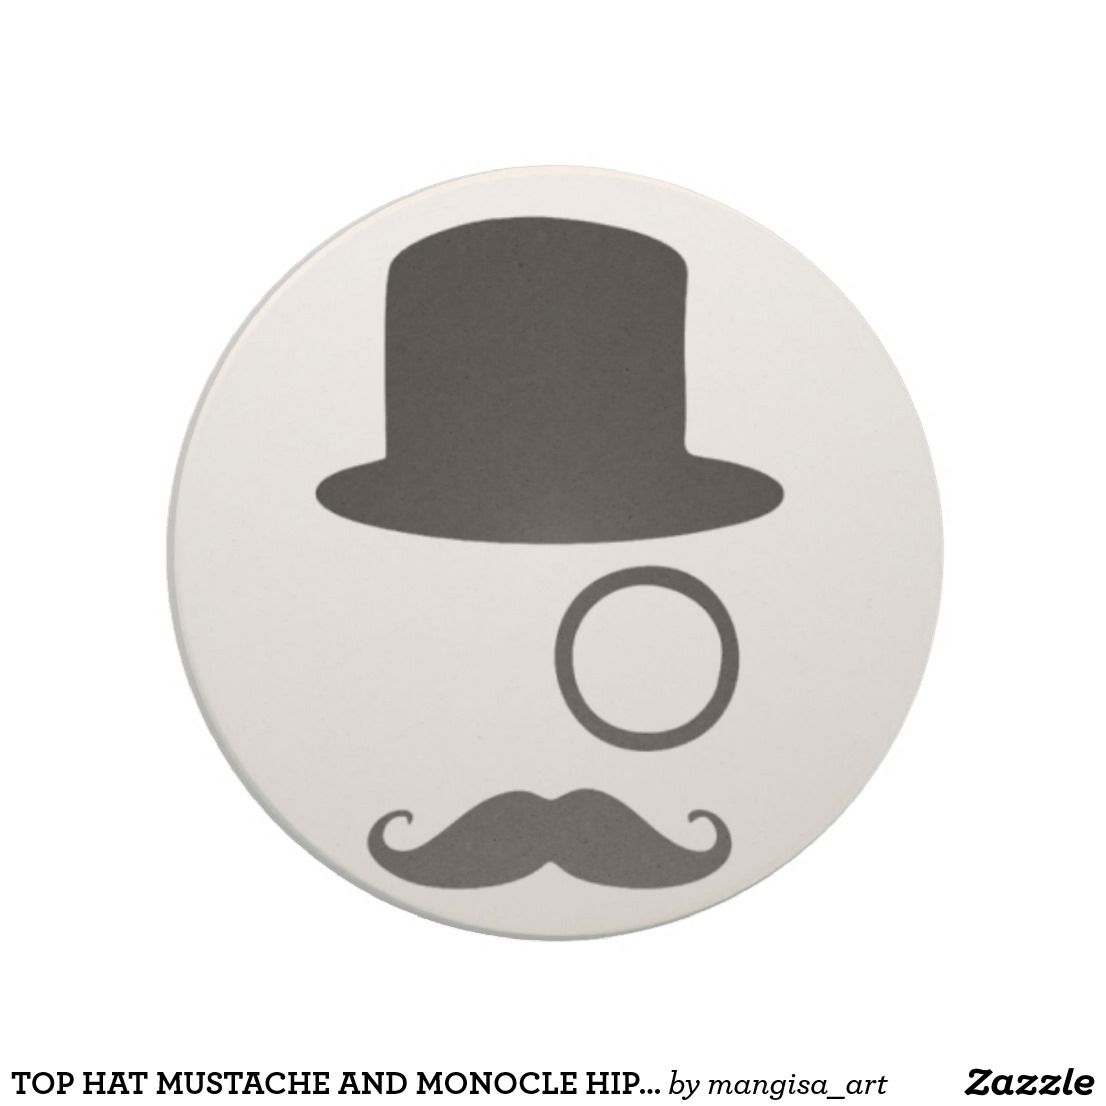 TOP HAT MUSTACHE AND MONOCLE HIPSTER STONE COASTER